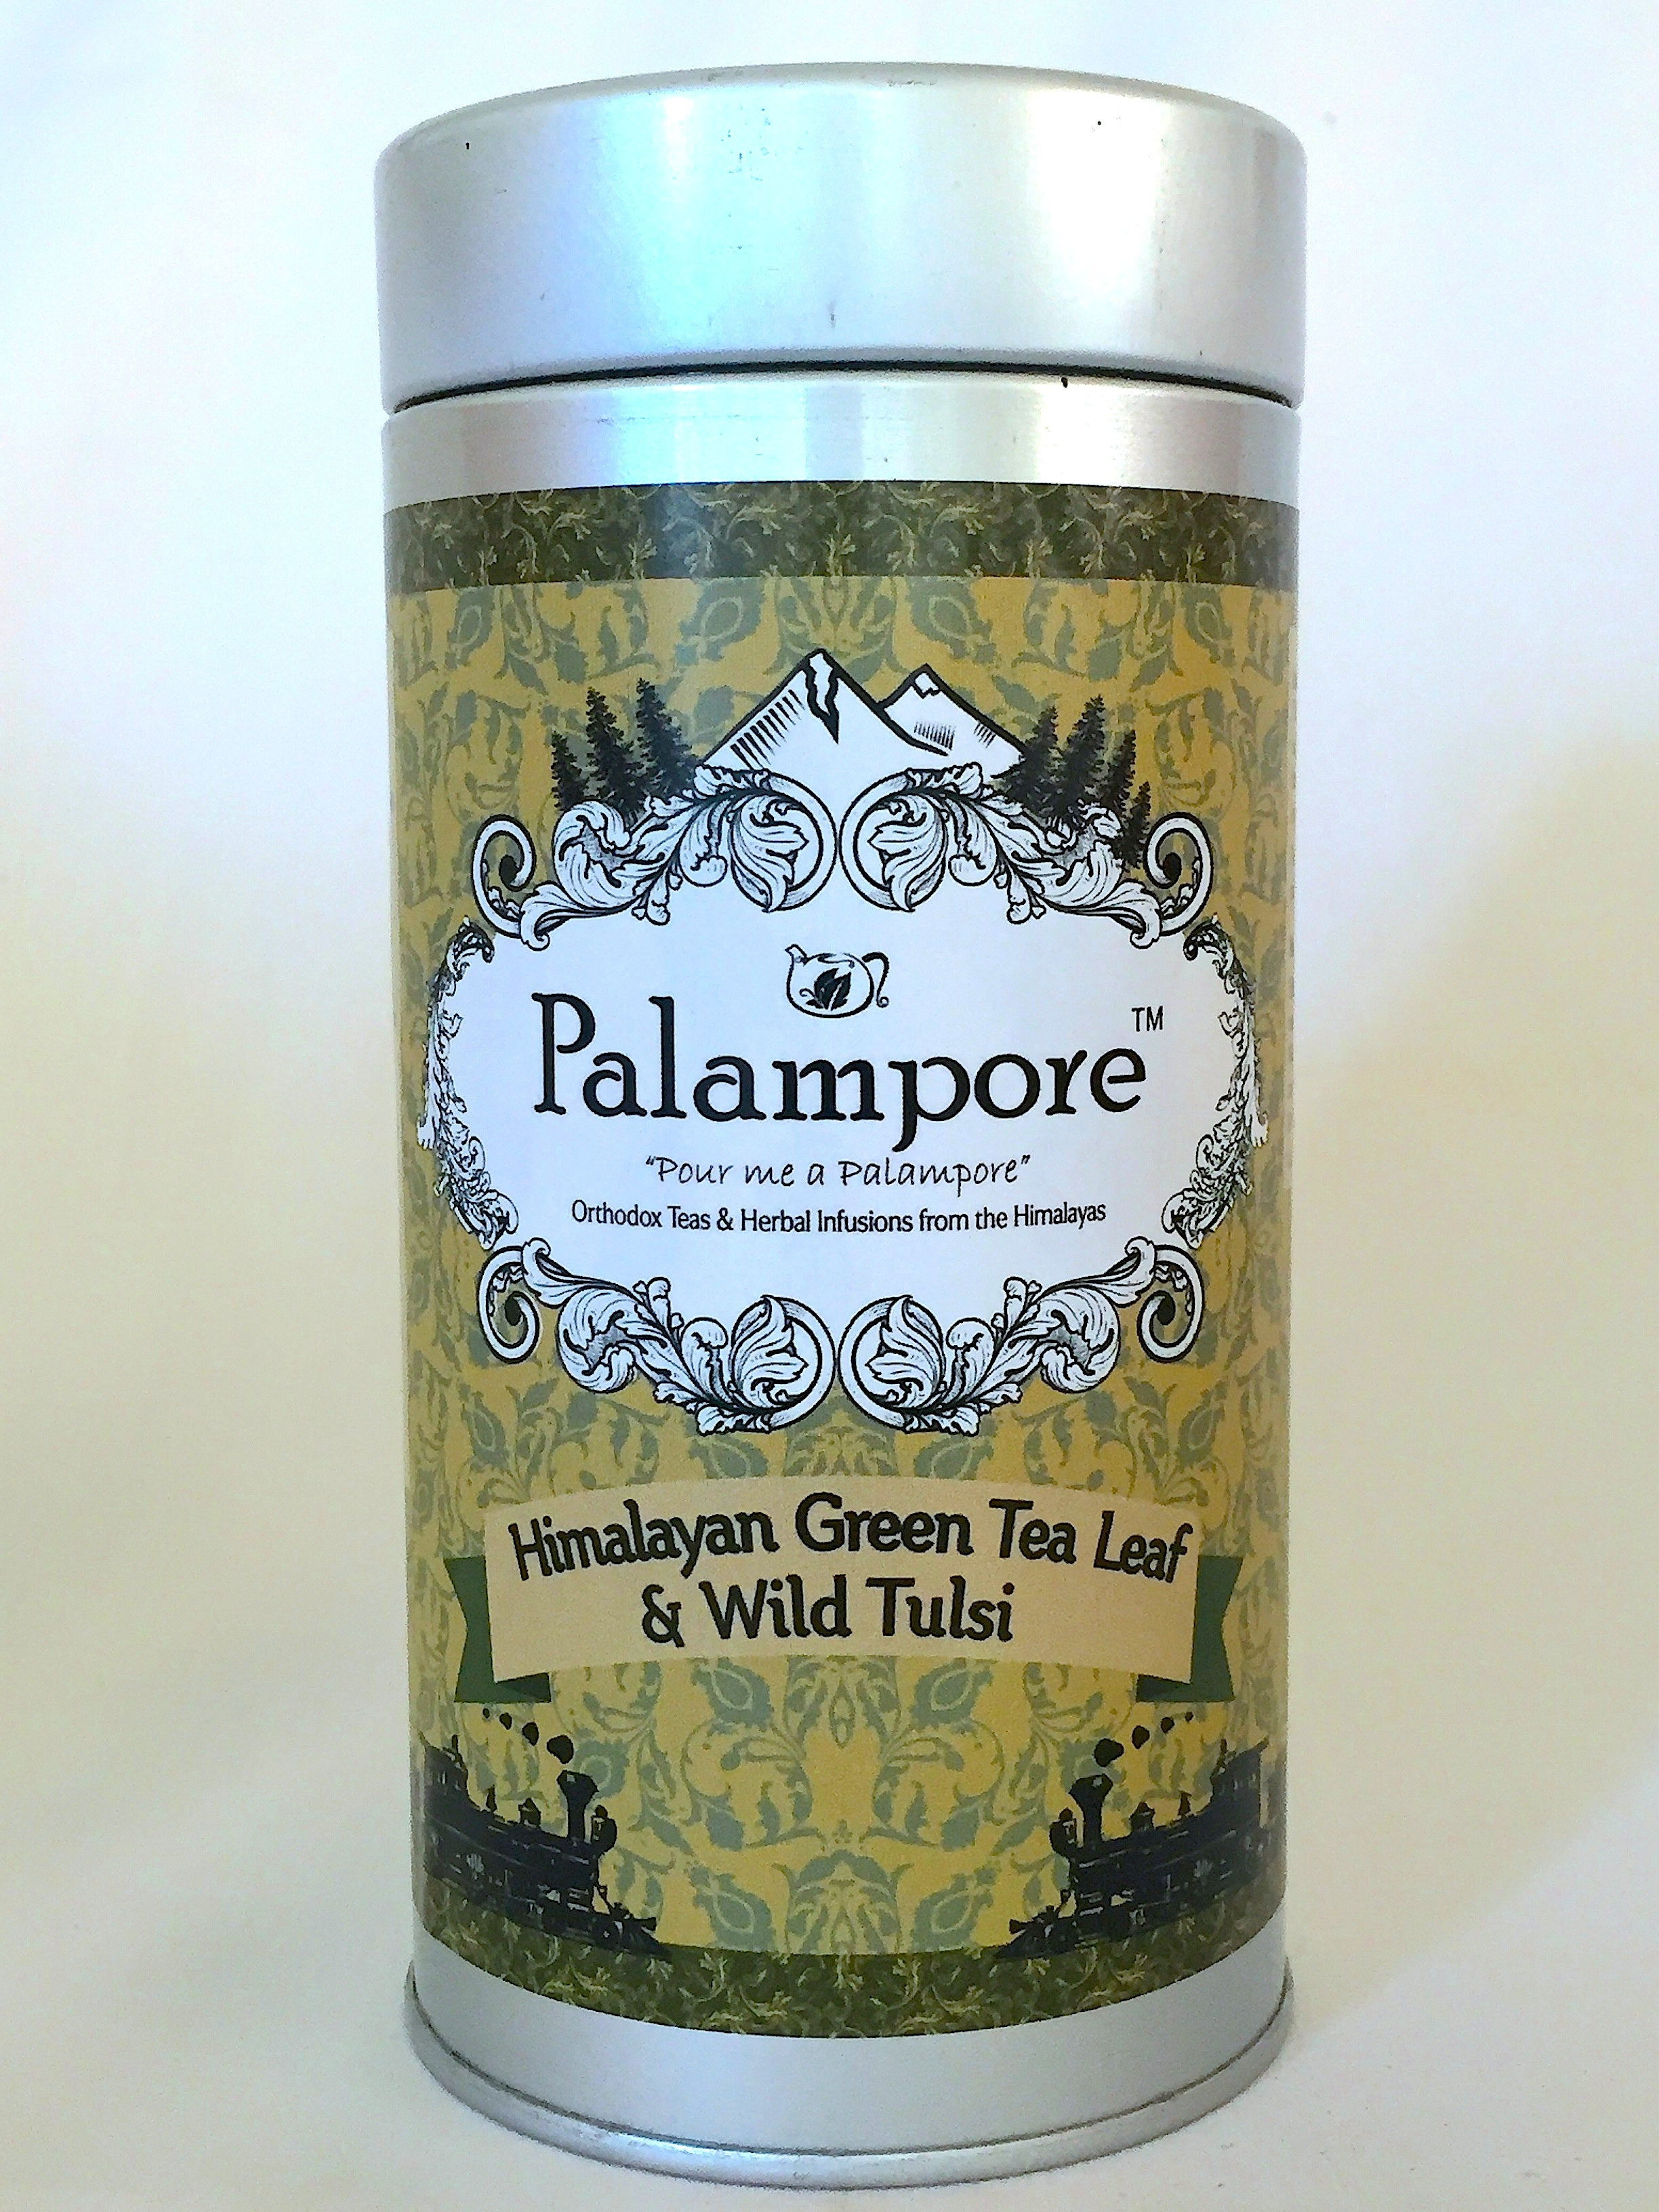 PALAMPORE- Himalayan Long Leaf Green Tea & Wild Tulsi (Basil)